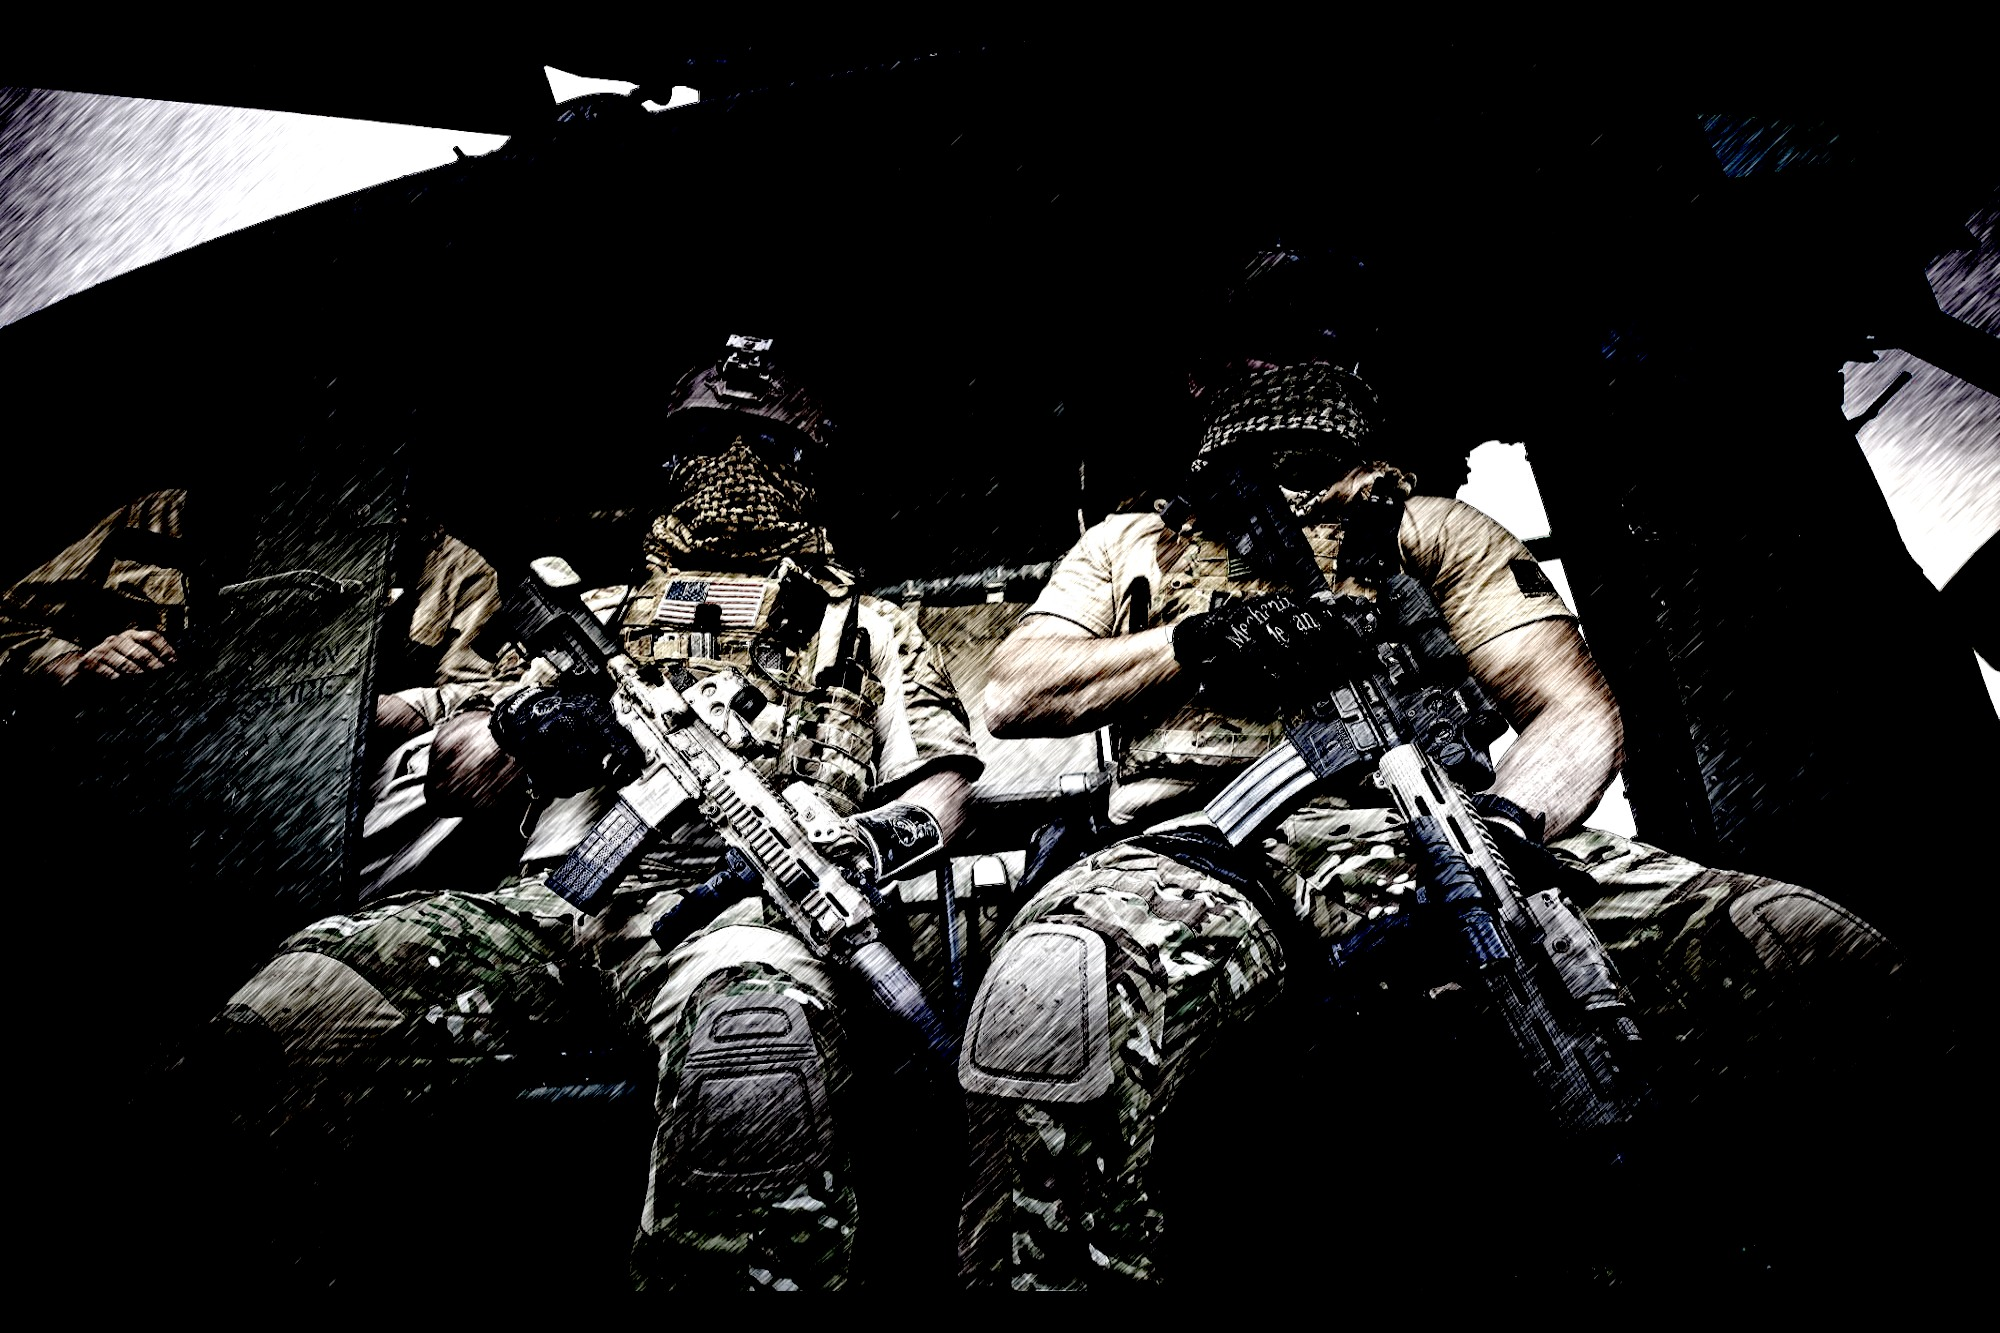 Us Army Special Forces Wallpaper: MISSIONFIRSTTACTICAL Computer Wallpapers, Desktop